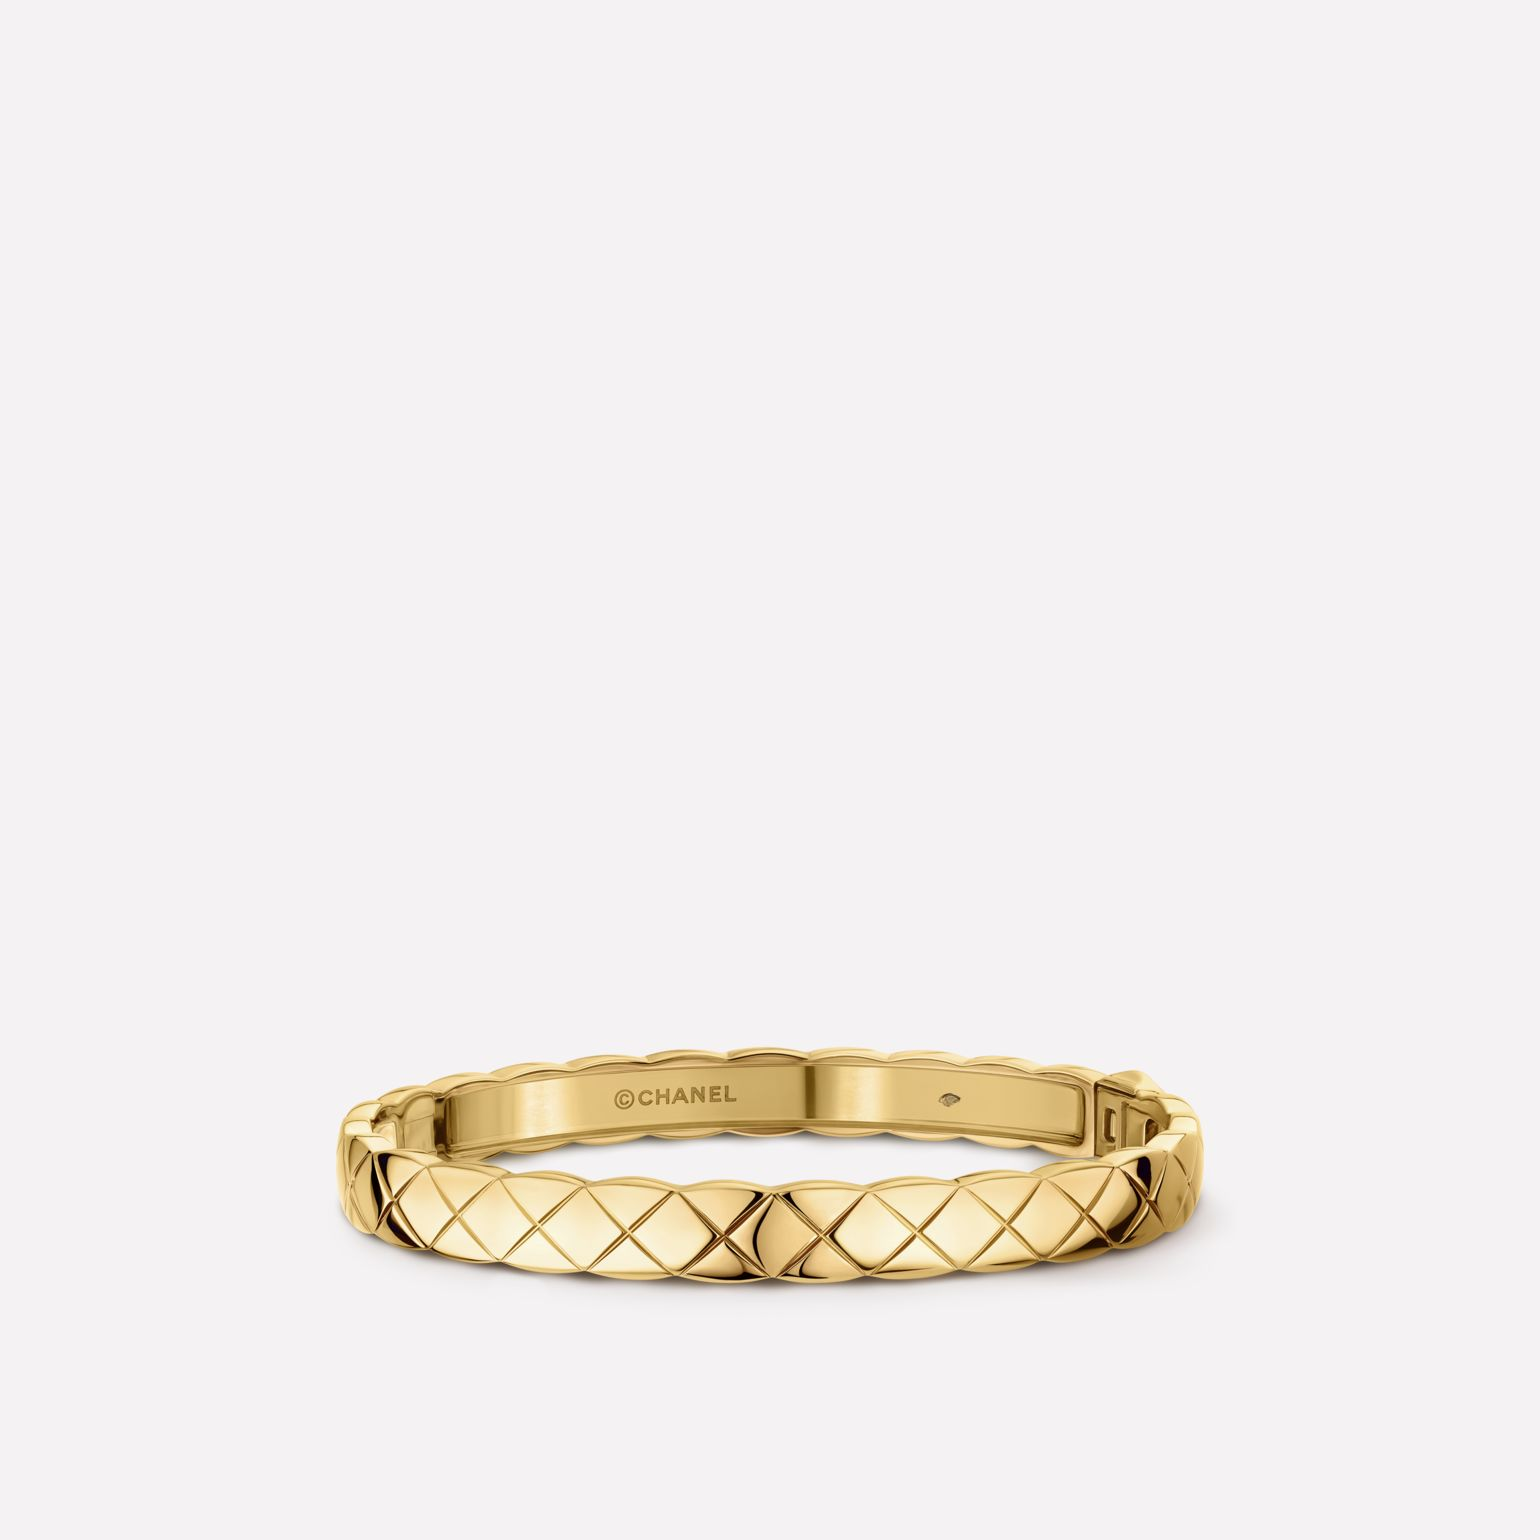 Coco Crush Bracelet Quilted motif bangle in 18K yellow gold